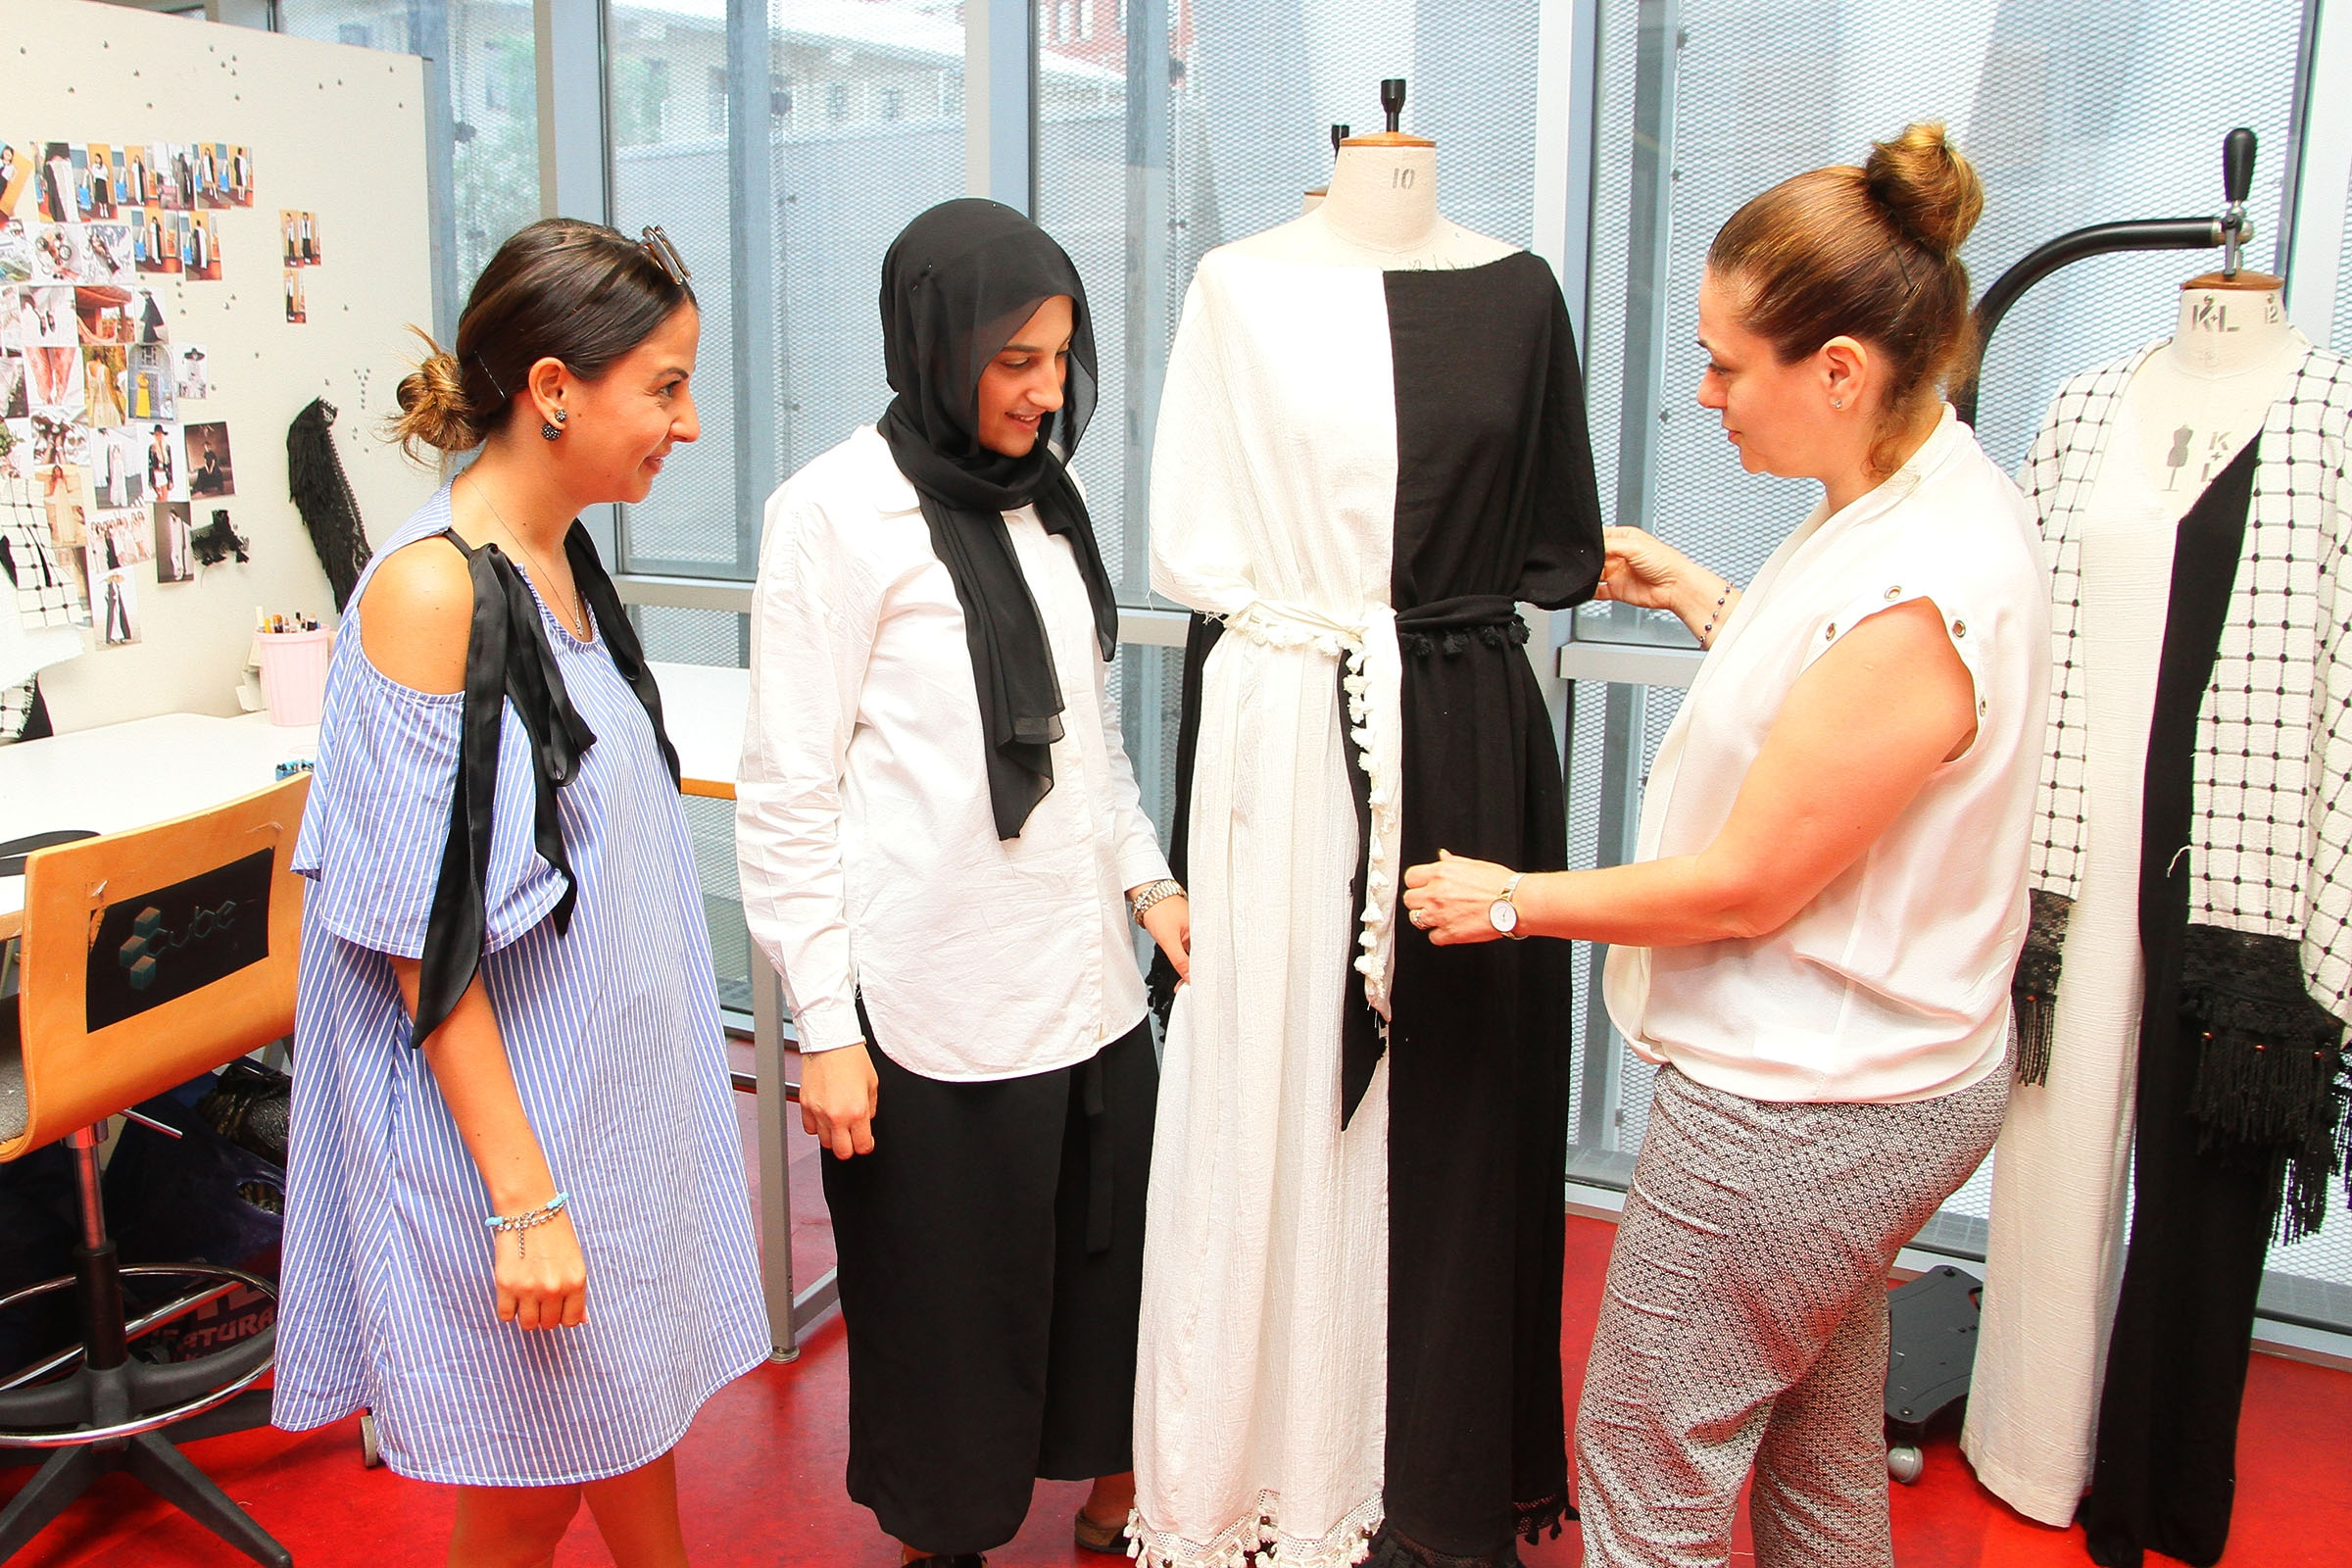 VOLUNTEER AMBASSADORS OF FASHION TO REPRESENT IZMIR ABROAD